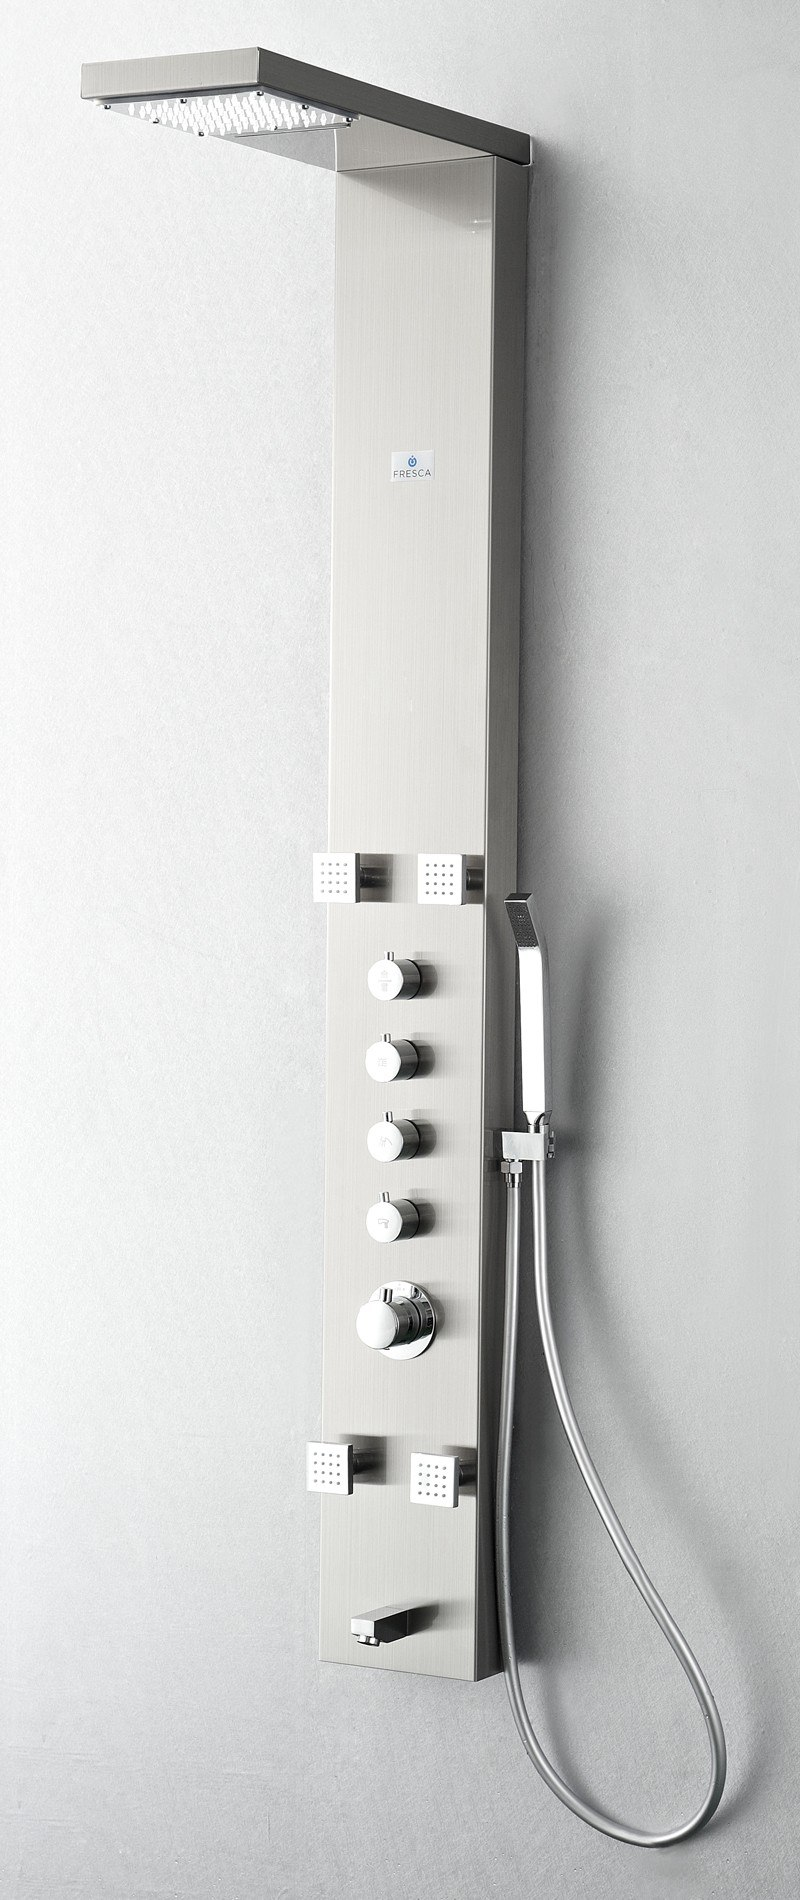 fresca fresca bath fresca shower fresca shower panels fresca fresca fsp8006bs verona stainless steel brushed silver thermostatic shower massage panel